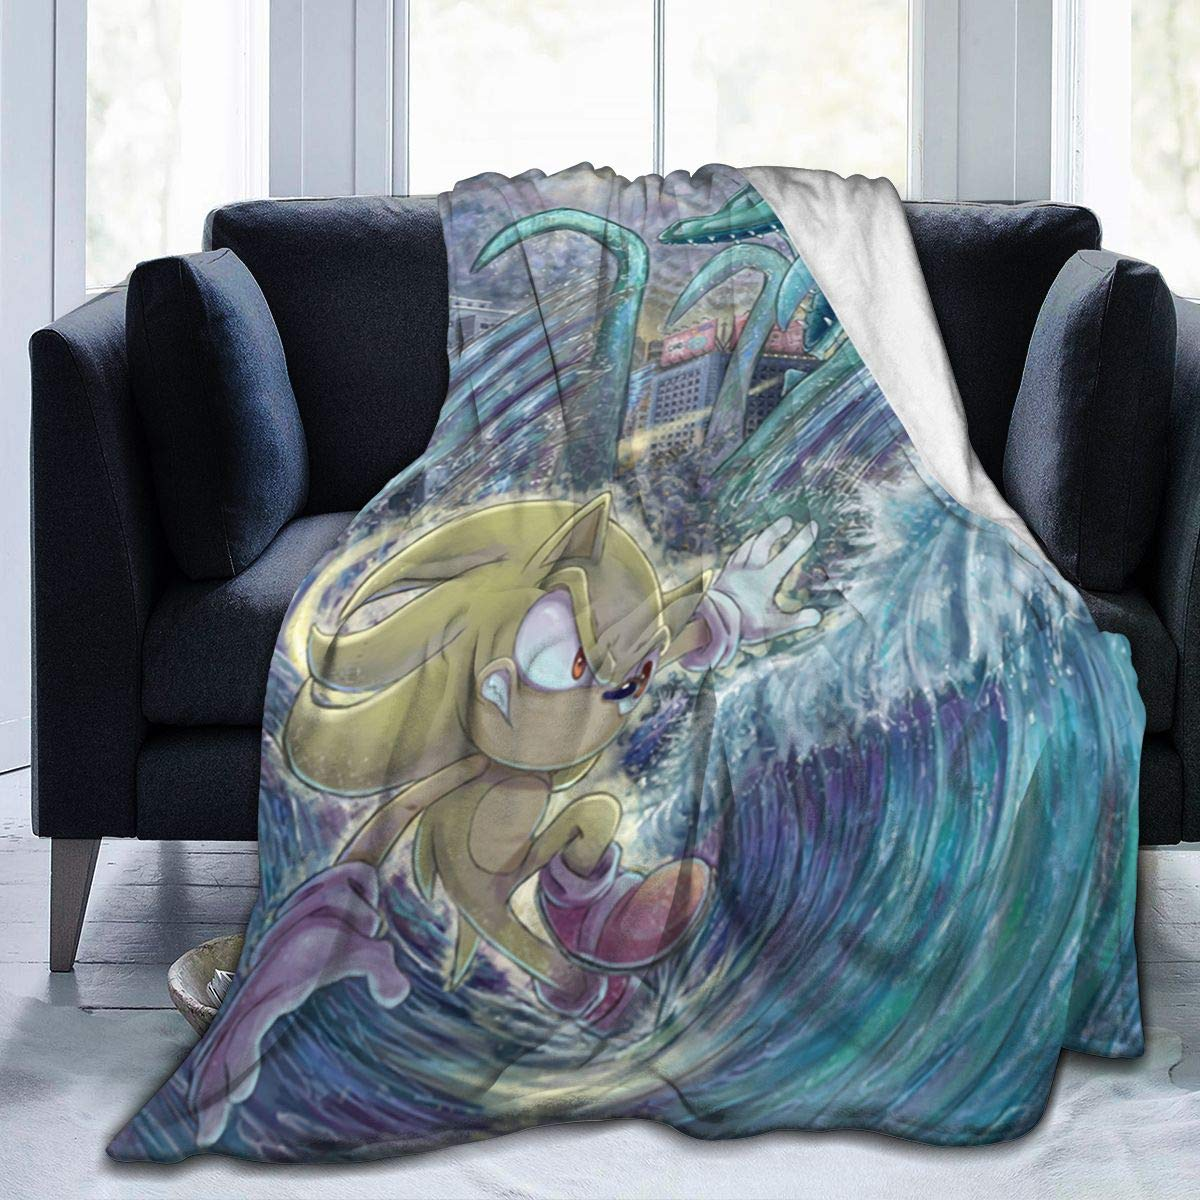 Milarz Sonic Hedgehog Game Blanket Cartoon Kids Plush Throw Weighted Blanket,Soft Warm Fuzzy Bedroom Blanket Plush Sheet,Coral Velvet Blanket for Bed Couch Chair Living Room